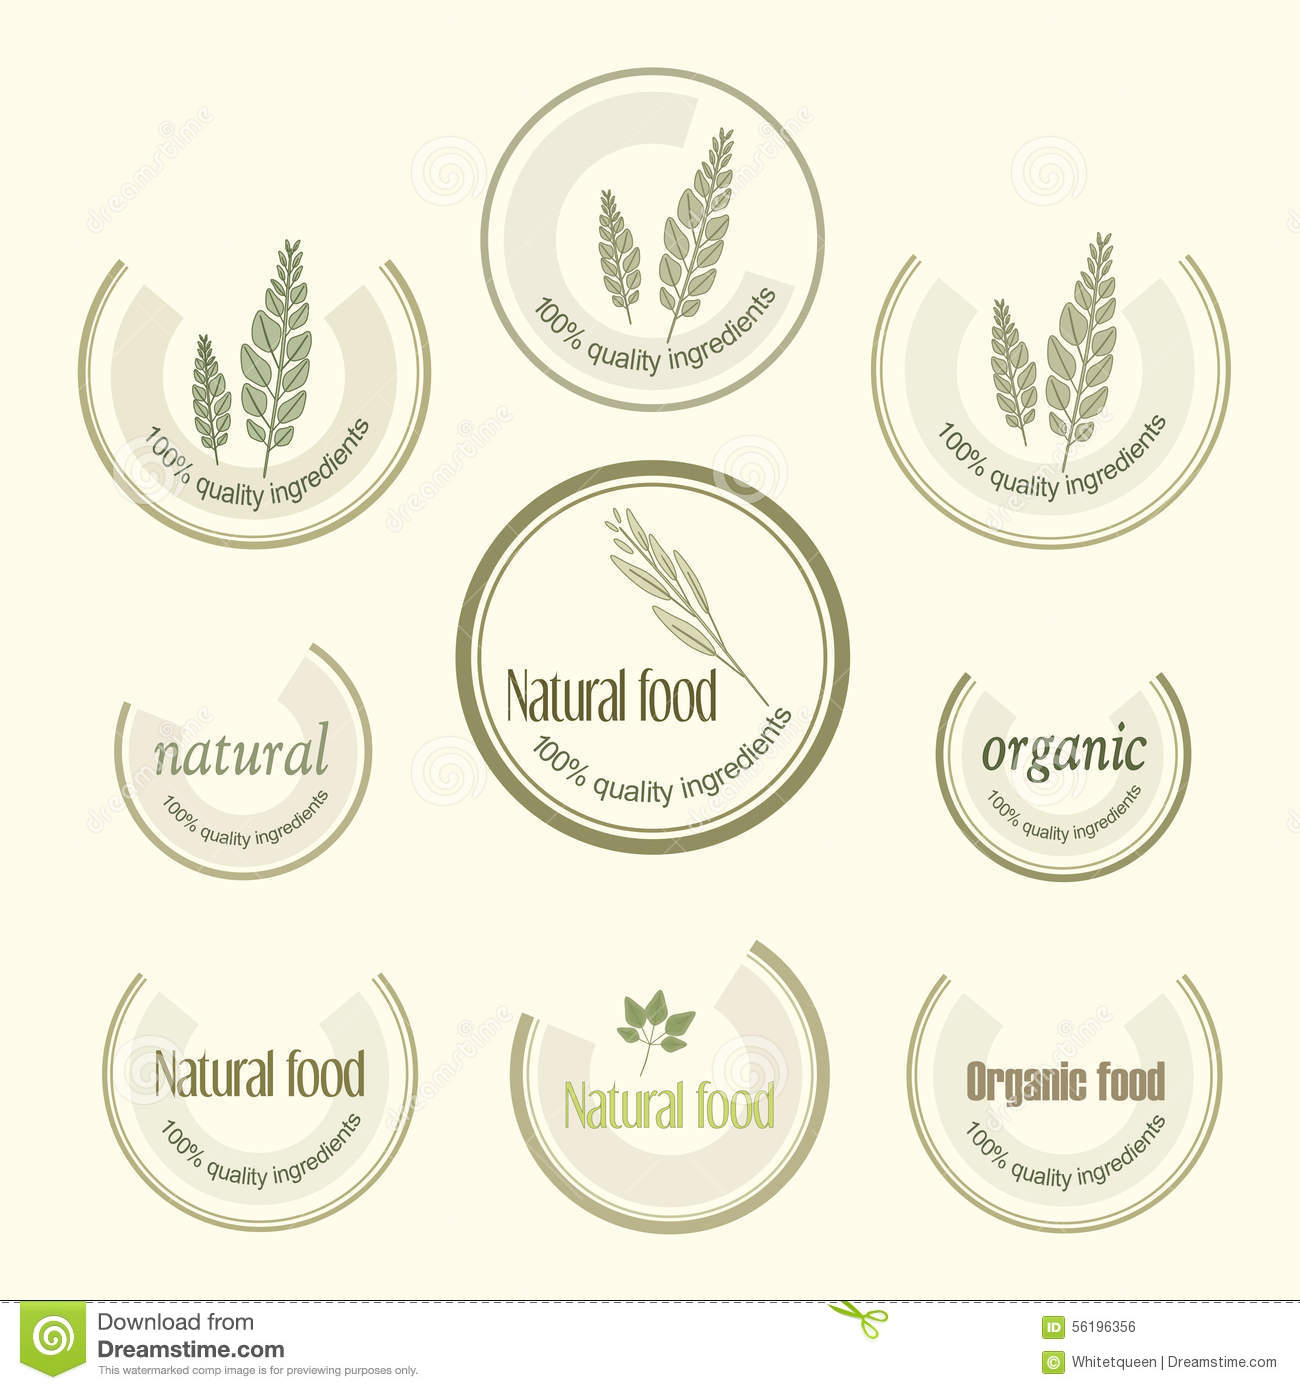 Are Organically Grown Foods The Best